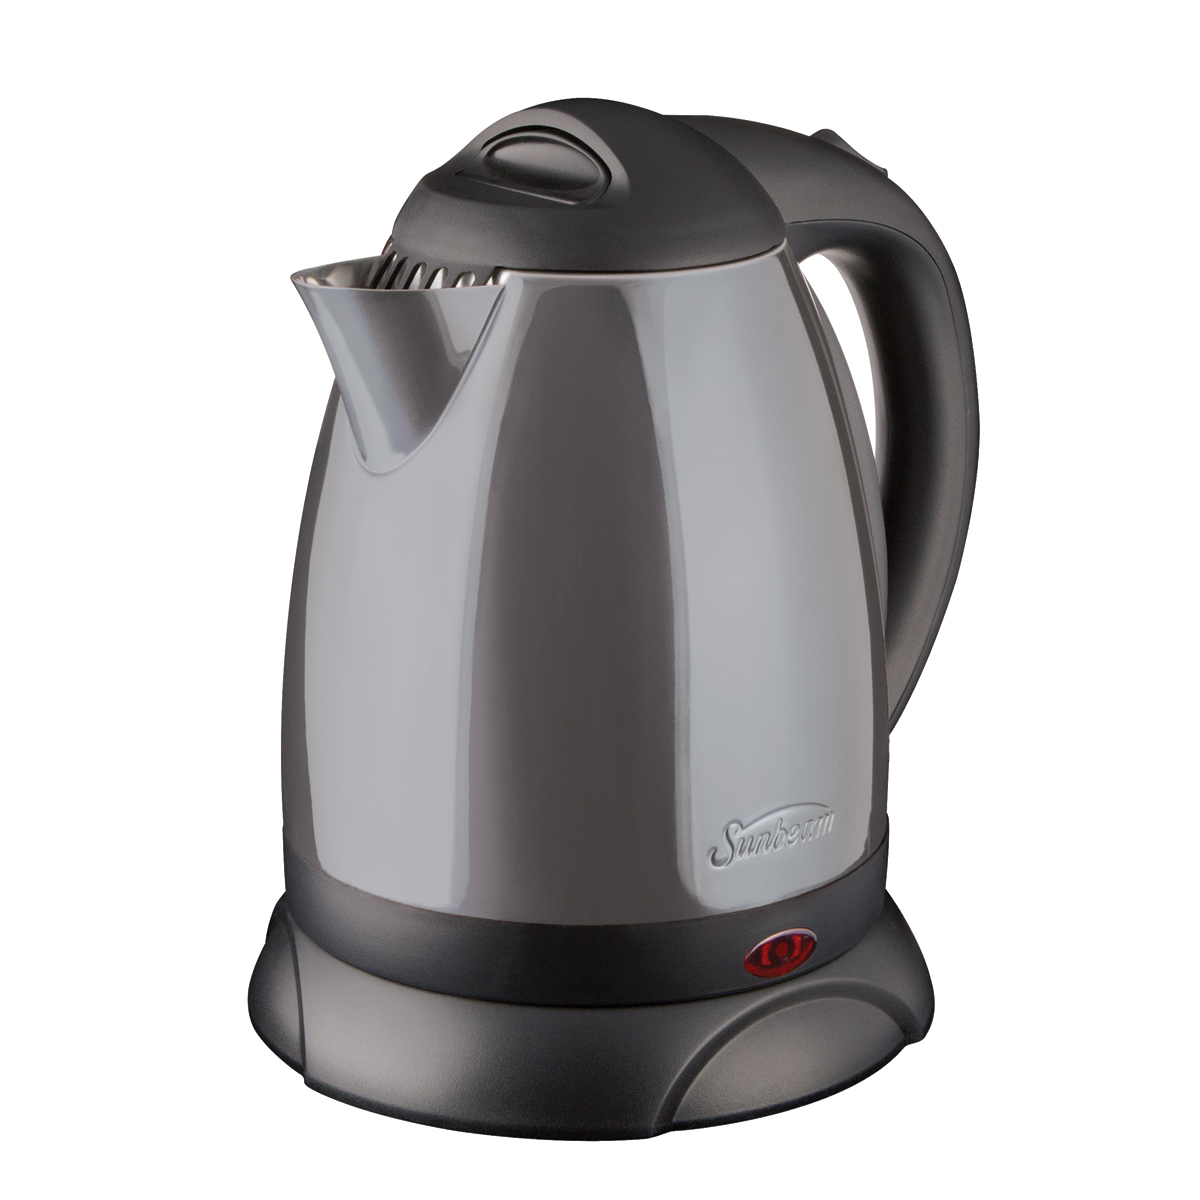 Sunbeam 174 1 7l Cordless Electric Kettle Smoke Pearl 3234sp